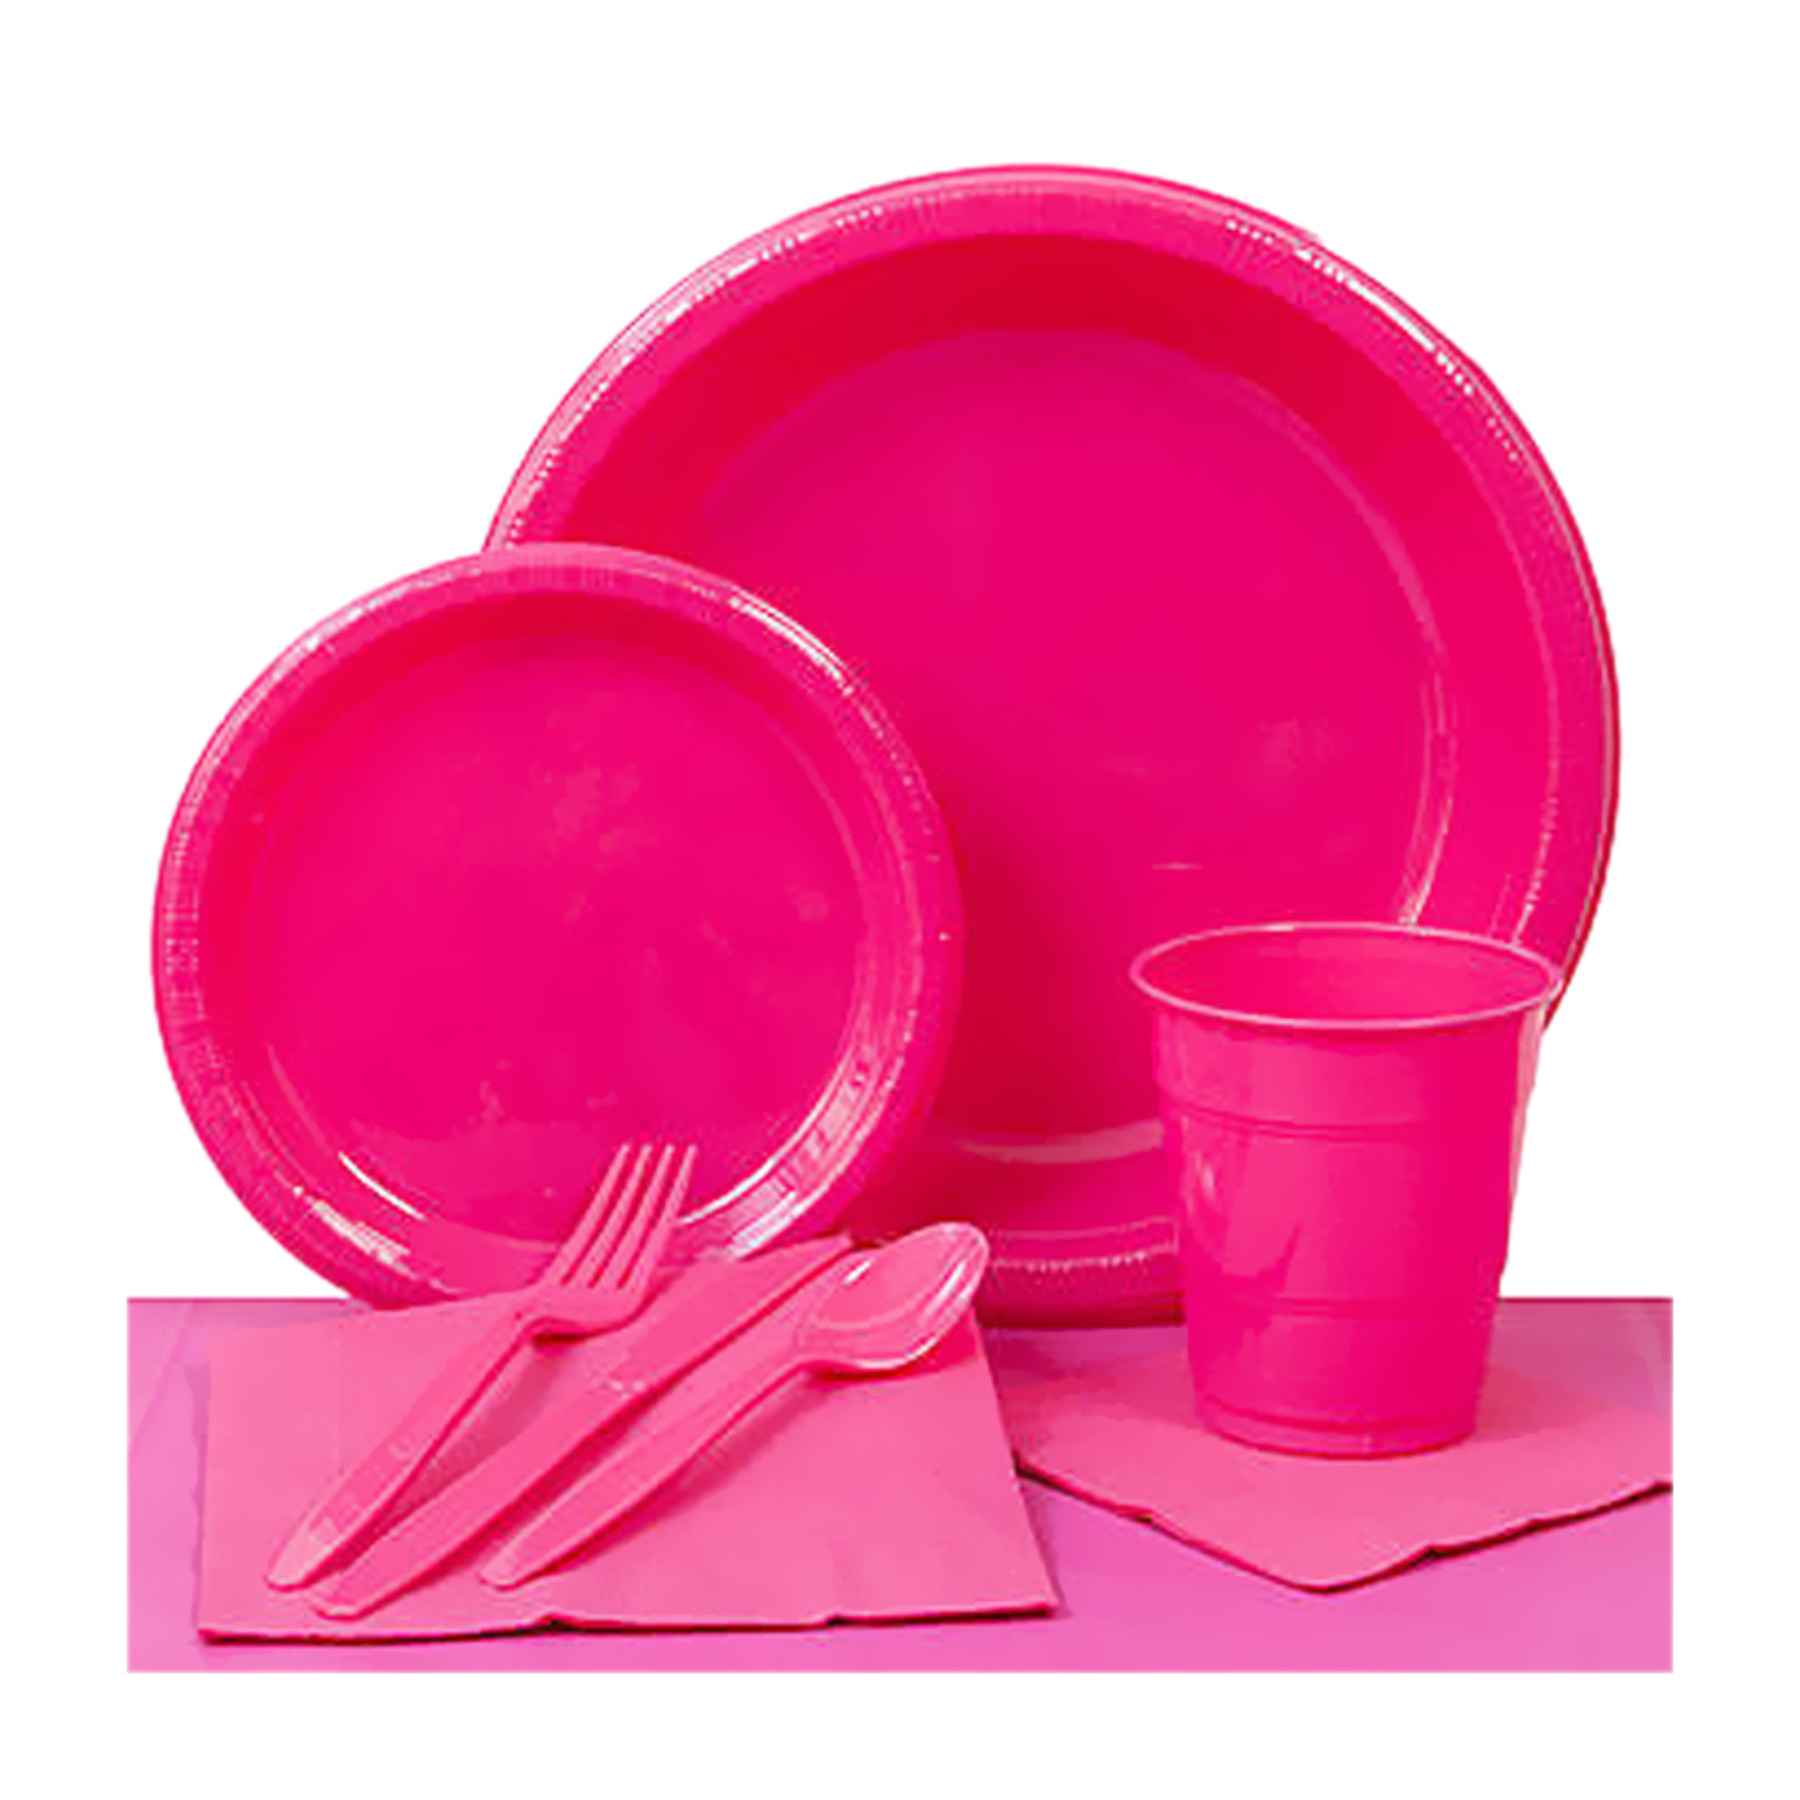 Shindigz Valentines Day Decorations Hot Pink Plastic Party Pack 1296-K1-Sd-Hpk 1296-K1-SD-HPK